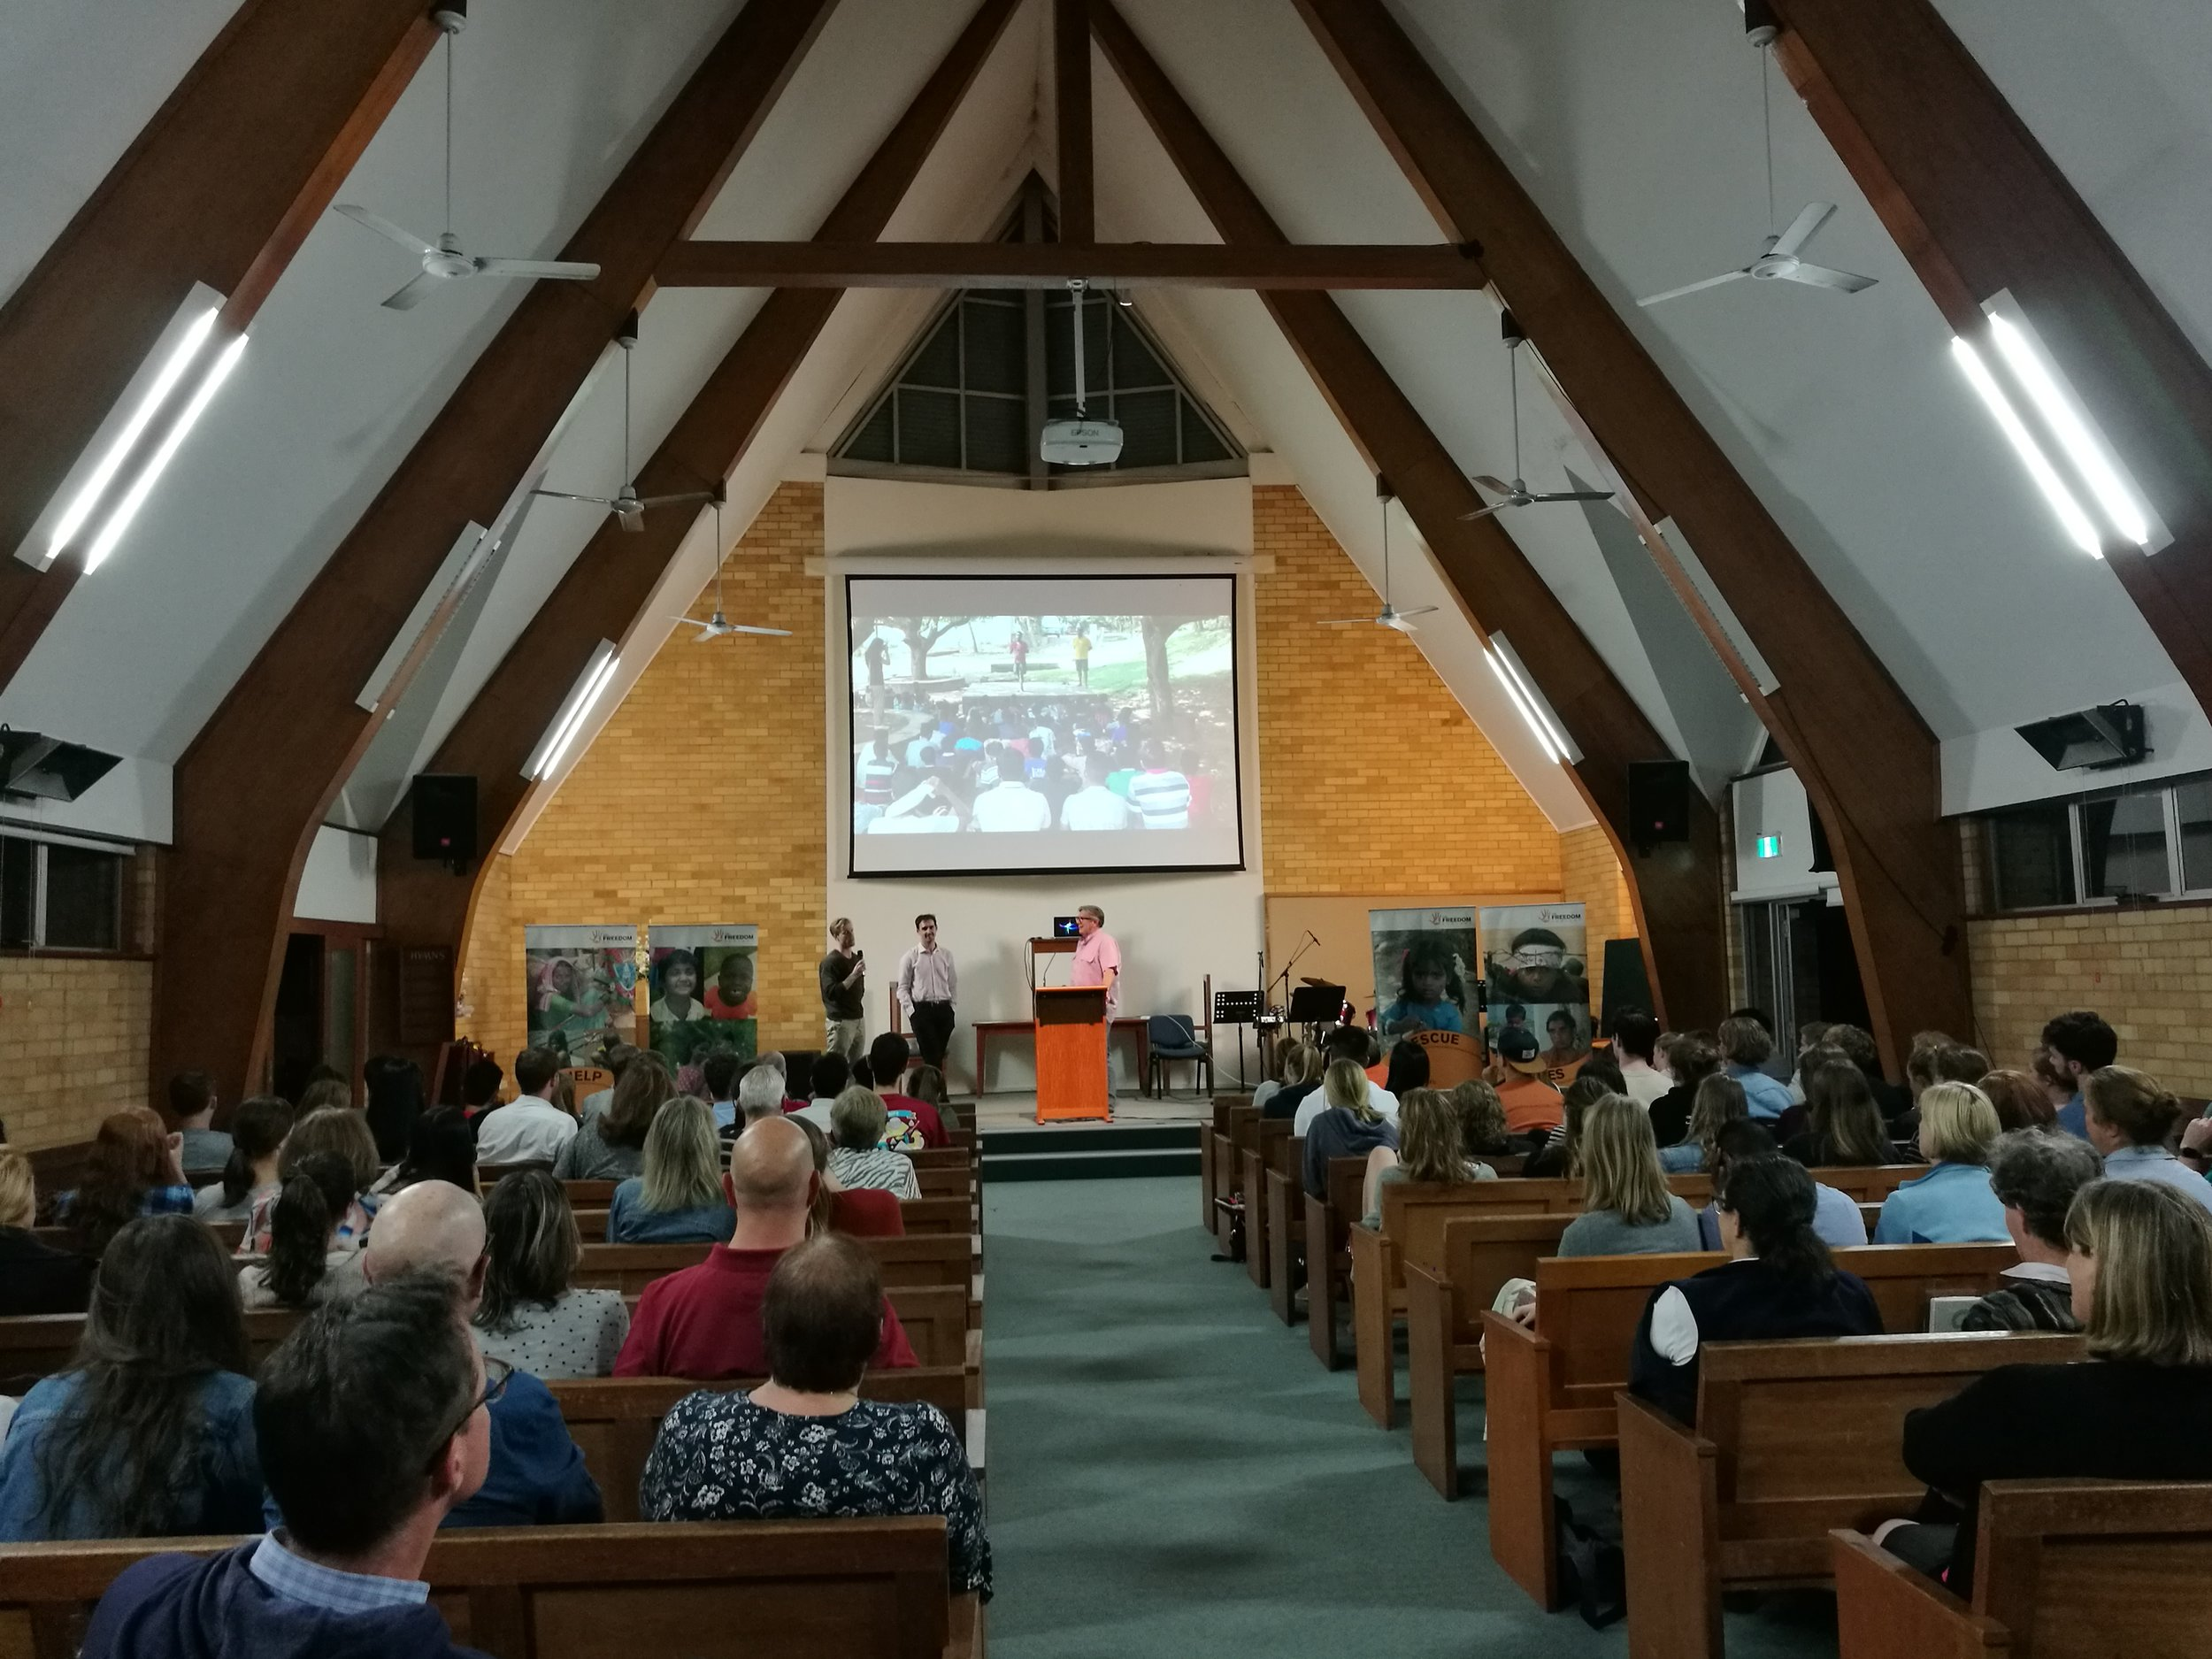 JUSTICE & FREEDOM FORUM 8 NOVEMBER 2017  The night was an opportunity for new and existing supporters to hear an update of our work, hear from those who had just gone to visit our projects in India, and even ask questions of our India field director.